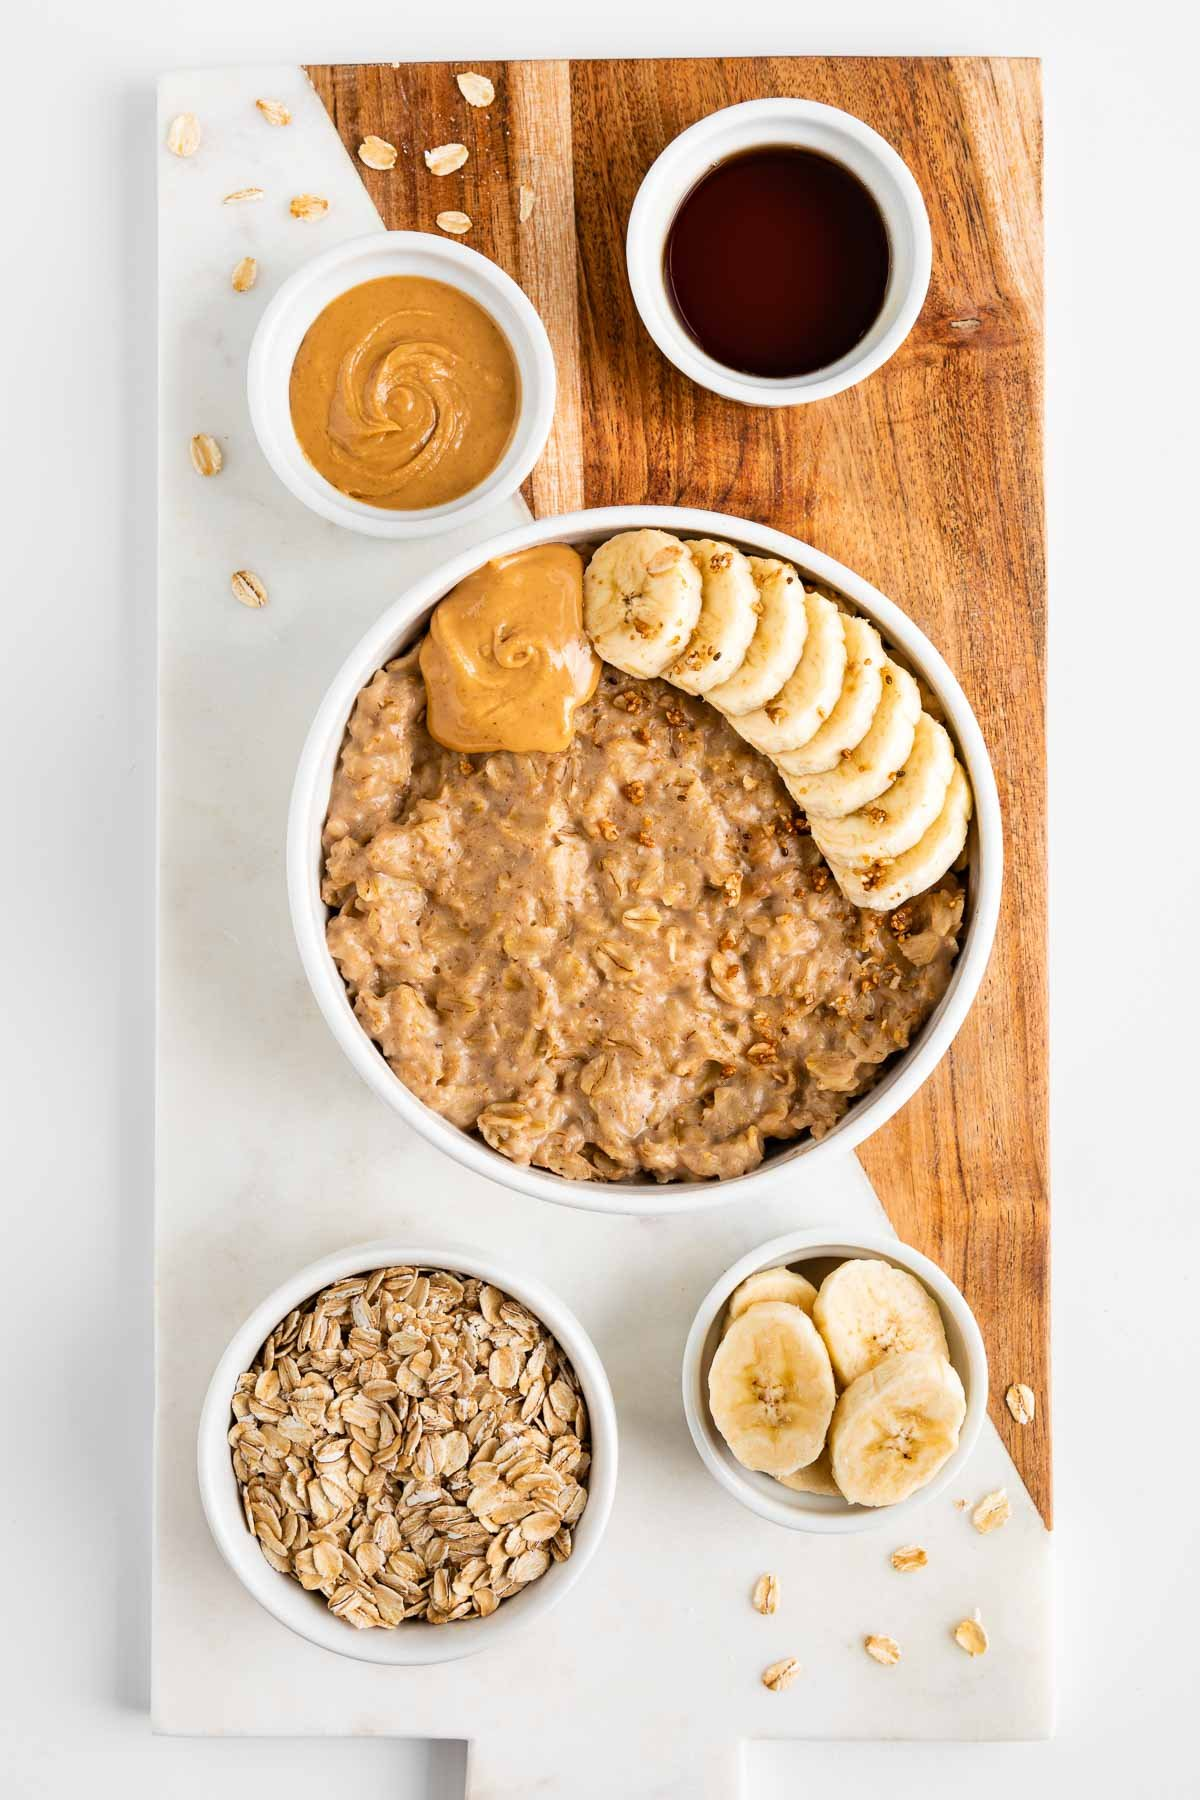 a marble and wood cutting board topped with a bowl of peanut butter oatmeal and small bowls filled with the ingredients in the recipe